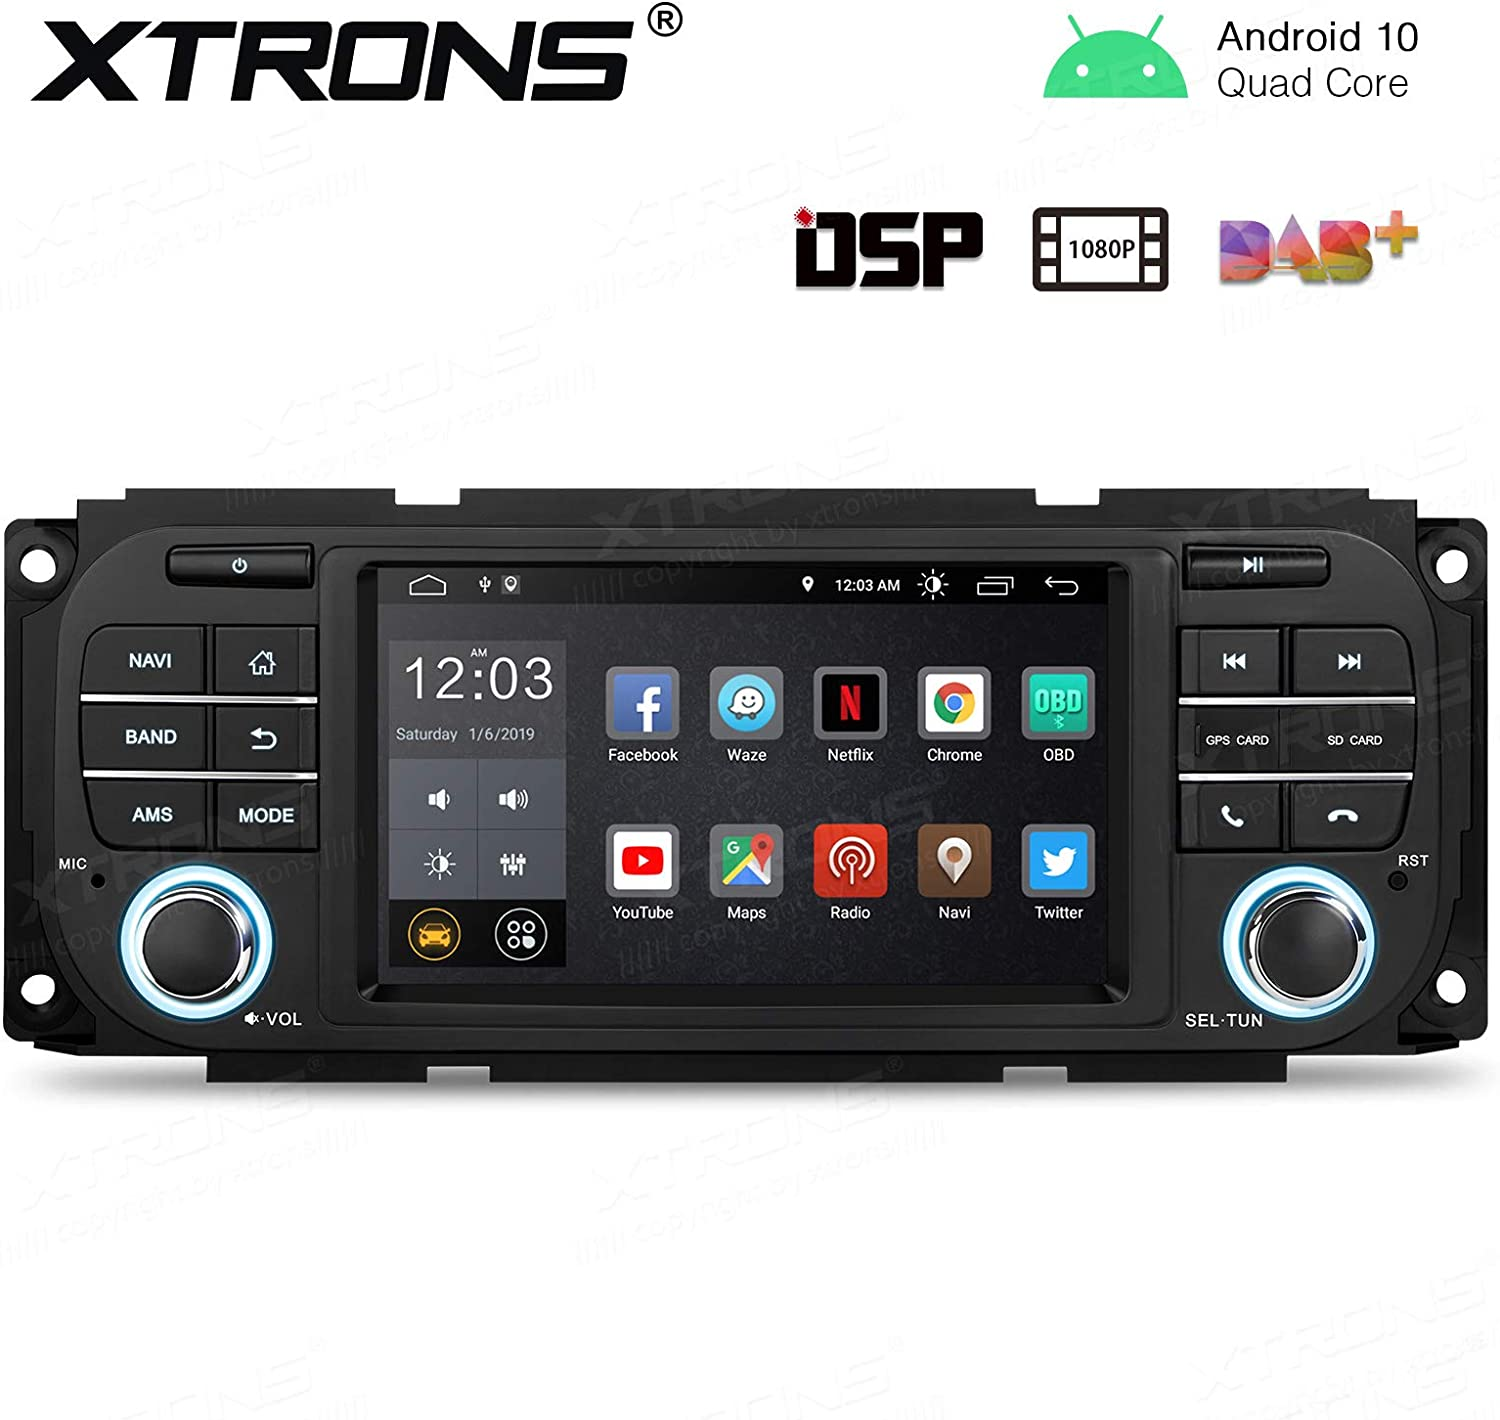 XTRONS Android 9.0 Car Stereo Radio Player for Jeep Dodge Chrysler Bluetooth GPS Navigator with 5 Inch Touch Screen Built-in DSP Quad-Core 2G RAM USB SD Port Supports TPMS DVR OBD2 Backup Camera SWC